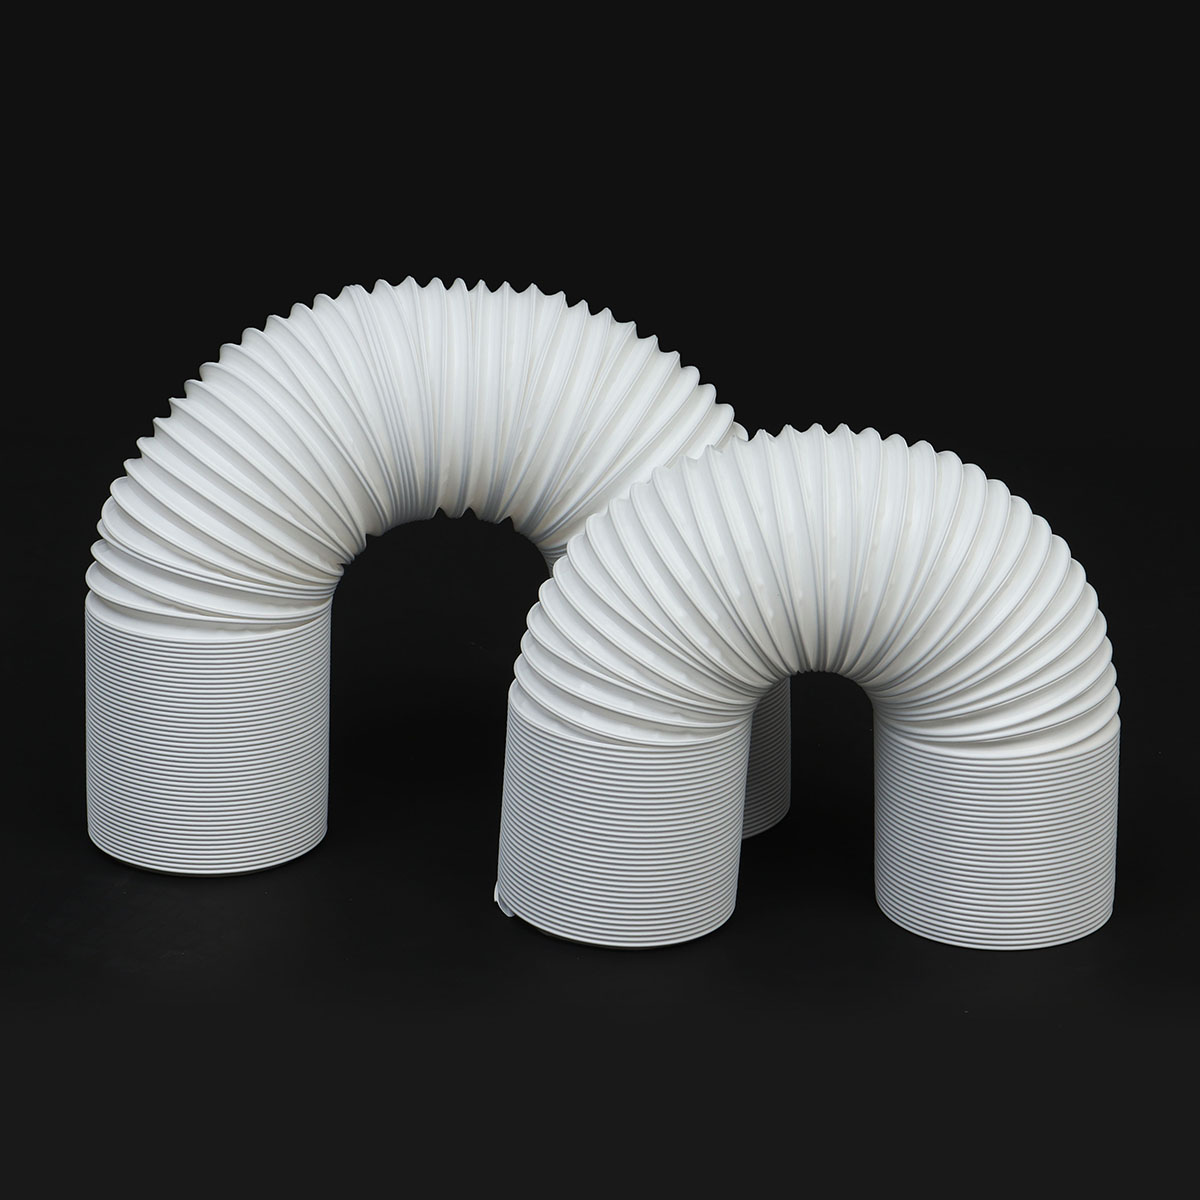 13cm 5.1 Diameter Flexible  Air Conditioner Exhaust Pipe Vent Hose Duct Outlet Free Extension For Portable Air Conditioner13cm 5.1 Diameter Flexible  Air Conditioner Exhaust Pipe Vent Hose Duct Outlet Free Extension For Portable Air Conditioner